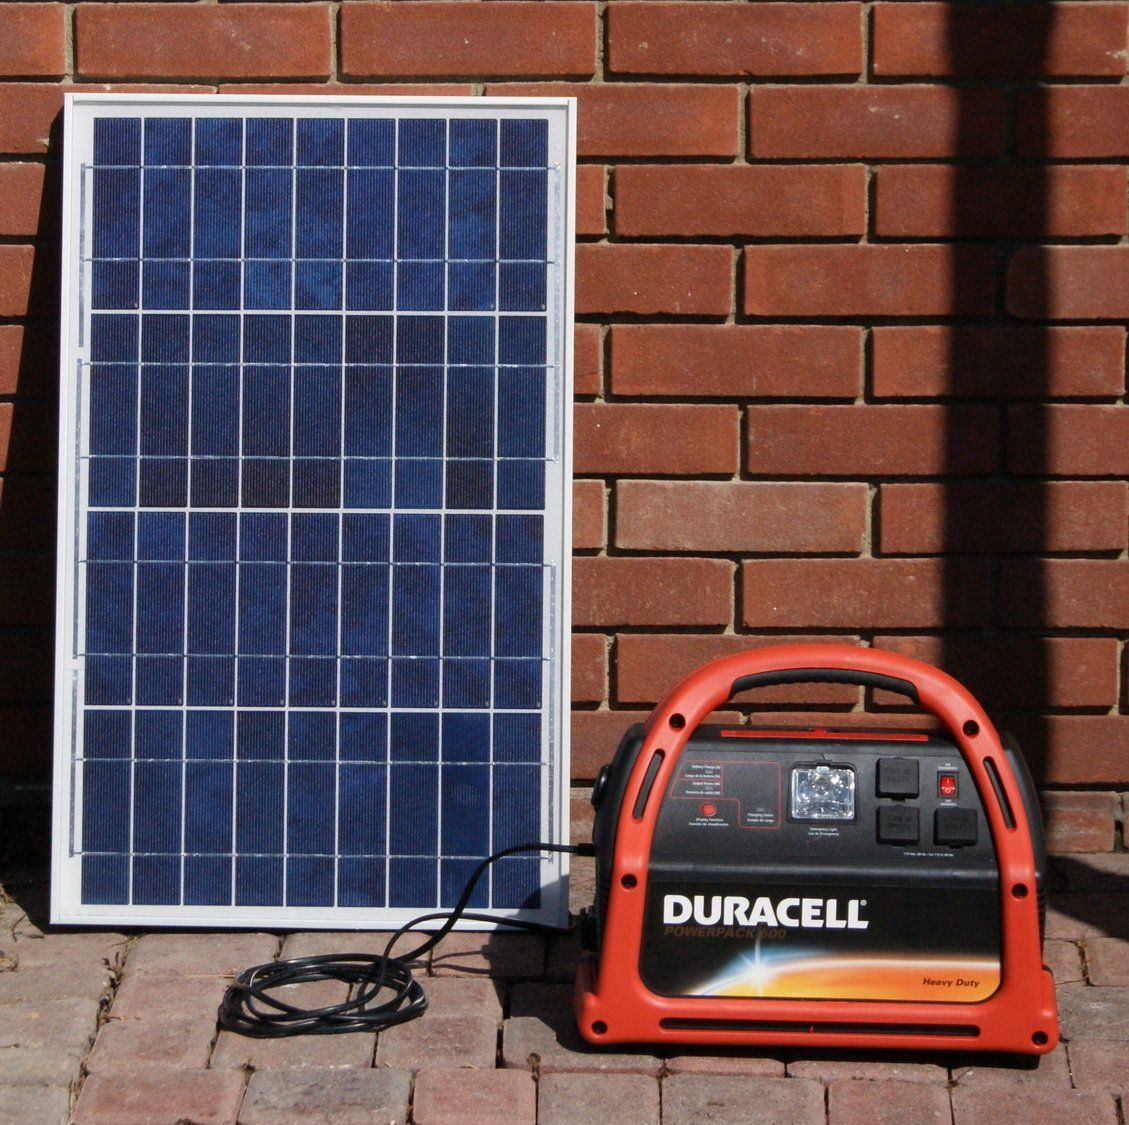 Solar Generator Plug N Play Kit By Offgridsolargenerators Price 399 99 19 49 Shipping 30 Watt 12v Solar Power Kits Portable Solar Power Solar Panels